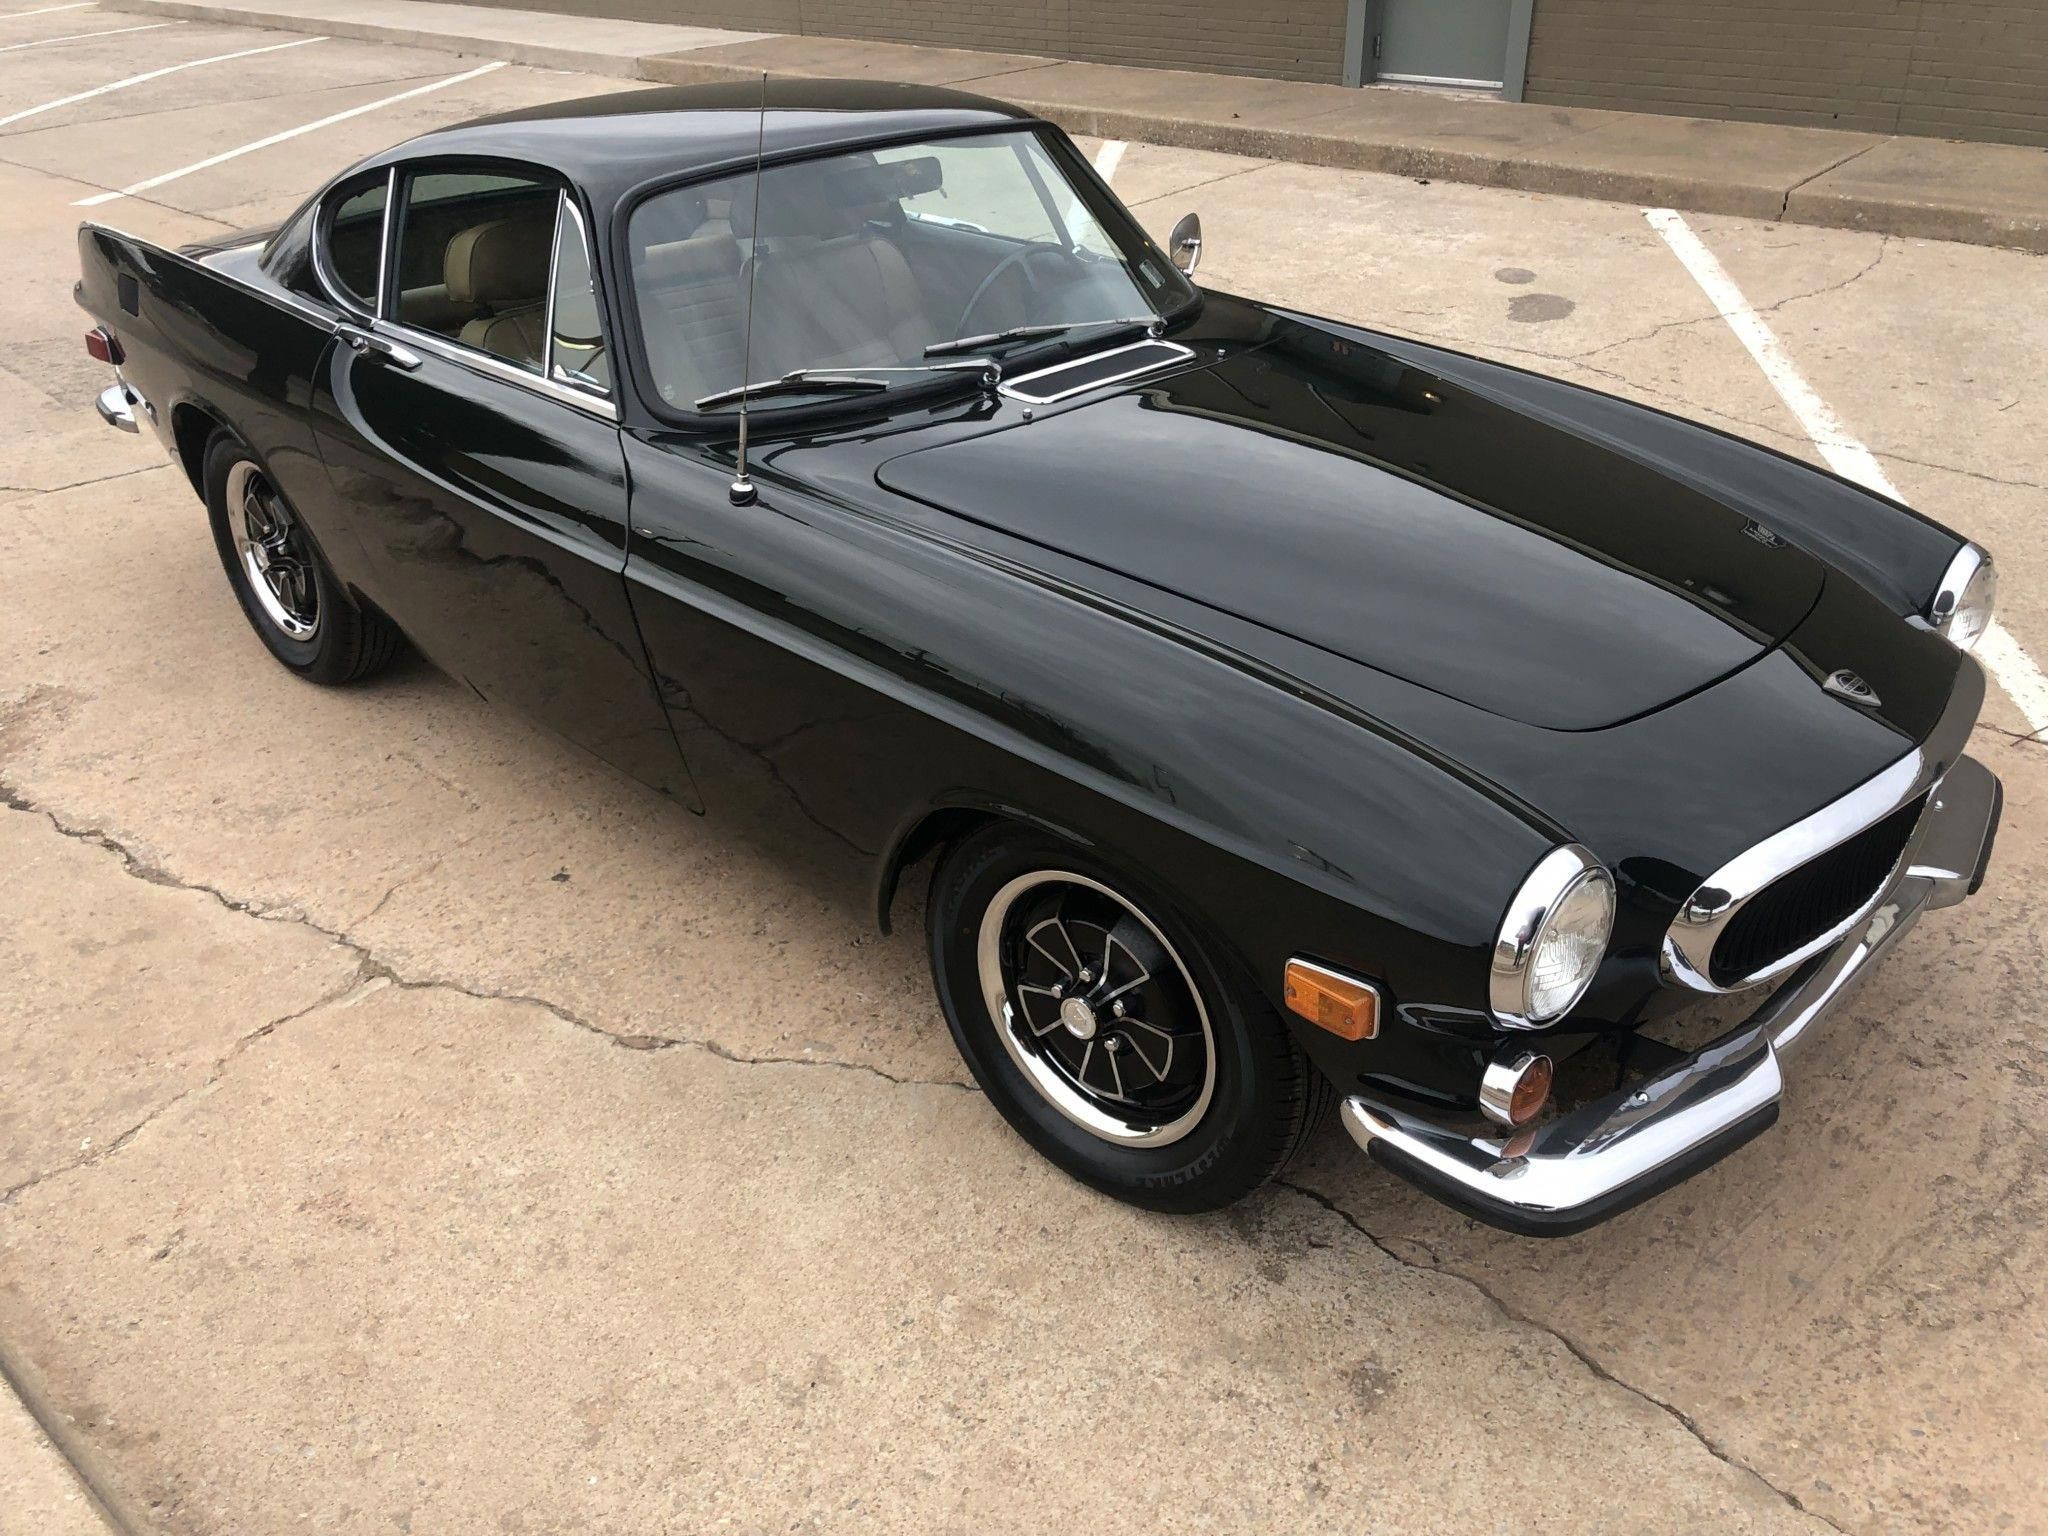 Bid for the chance to own a 1971 Volvo 1800E at auction